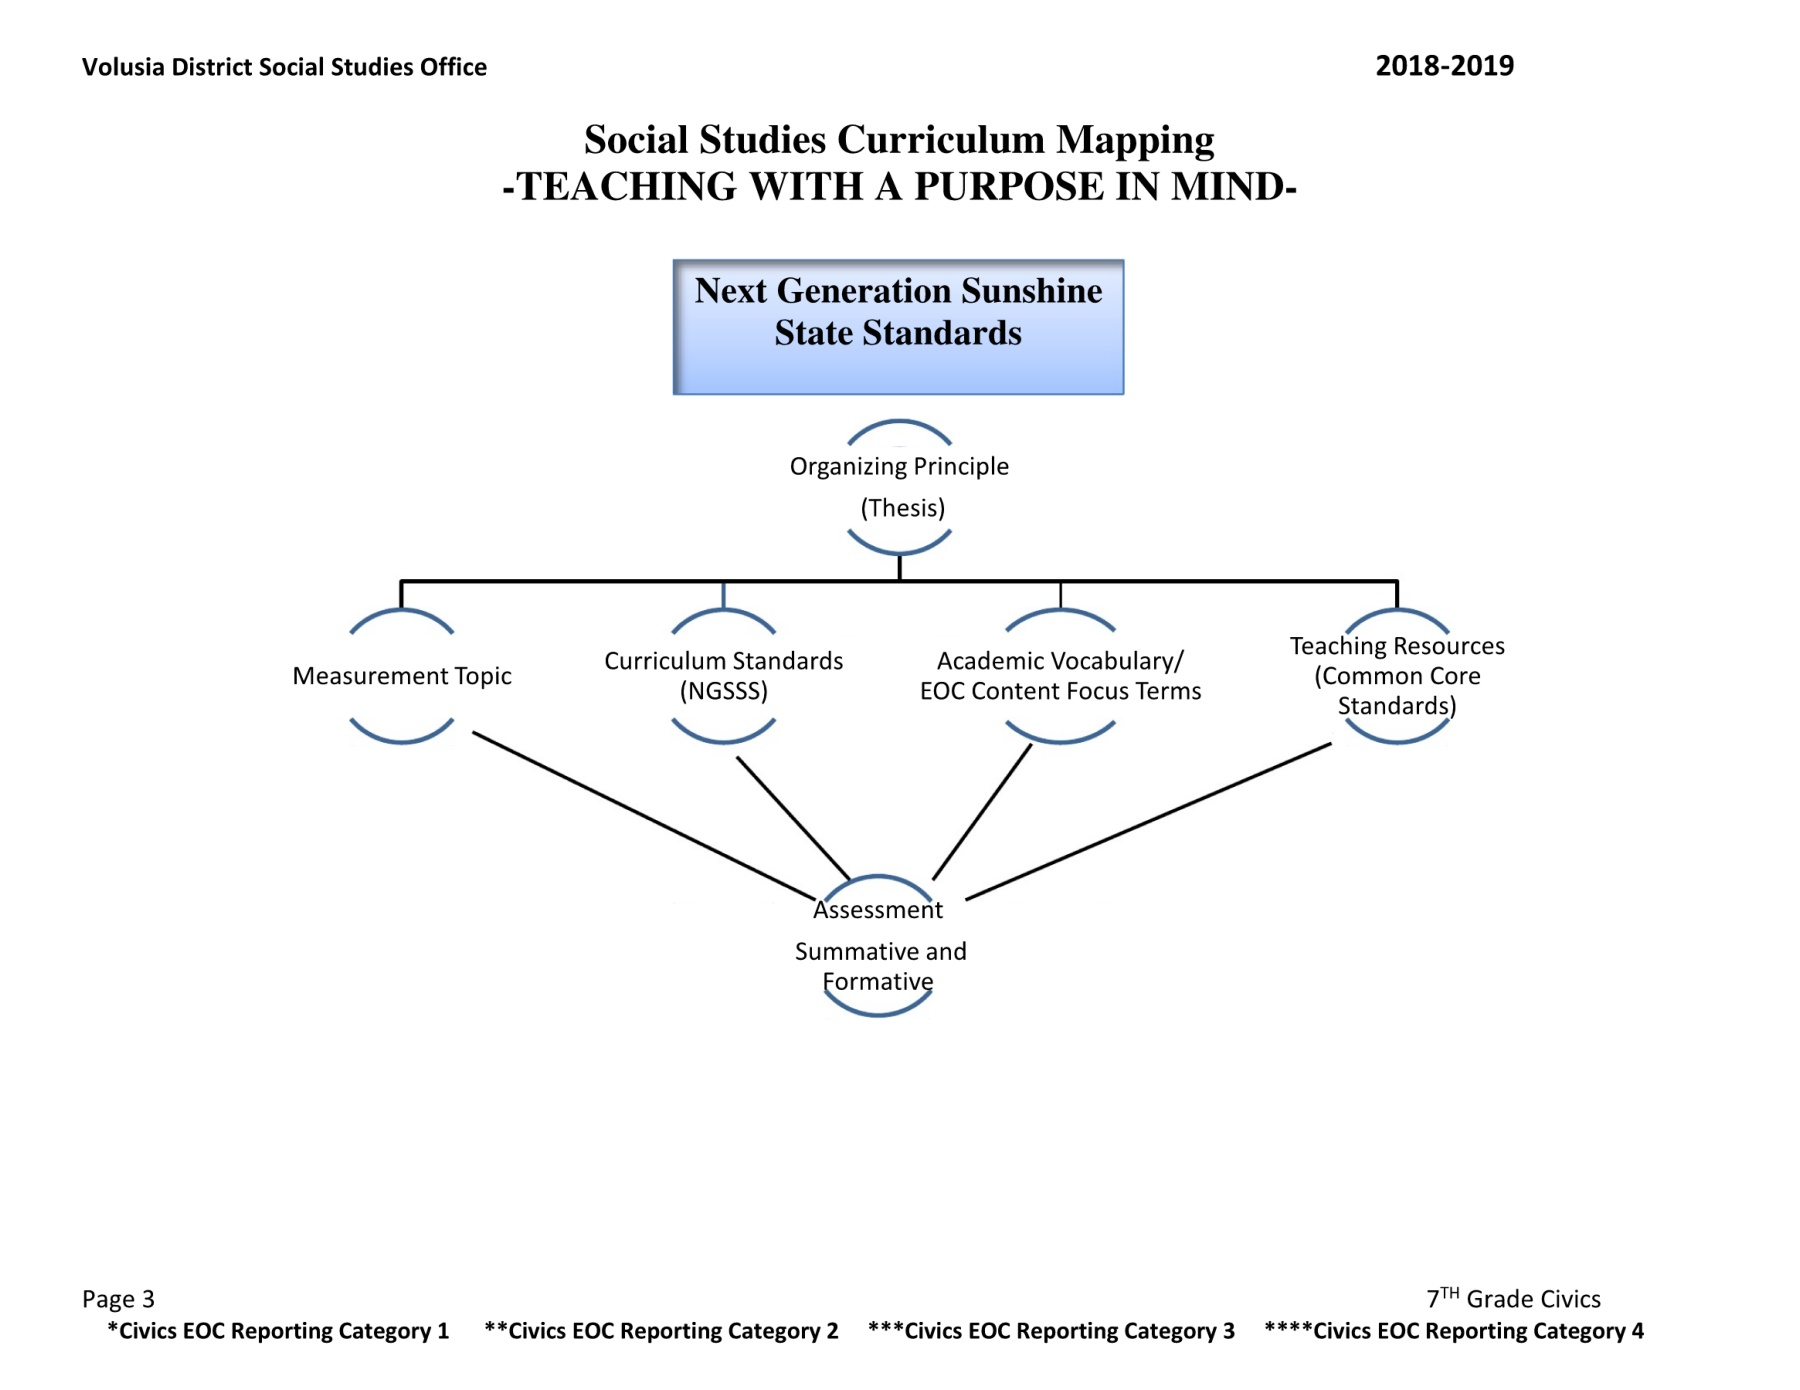 Civics Curriculum Map: VCS Secondary Social Studies Department